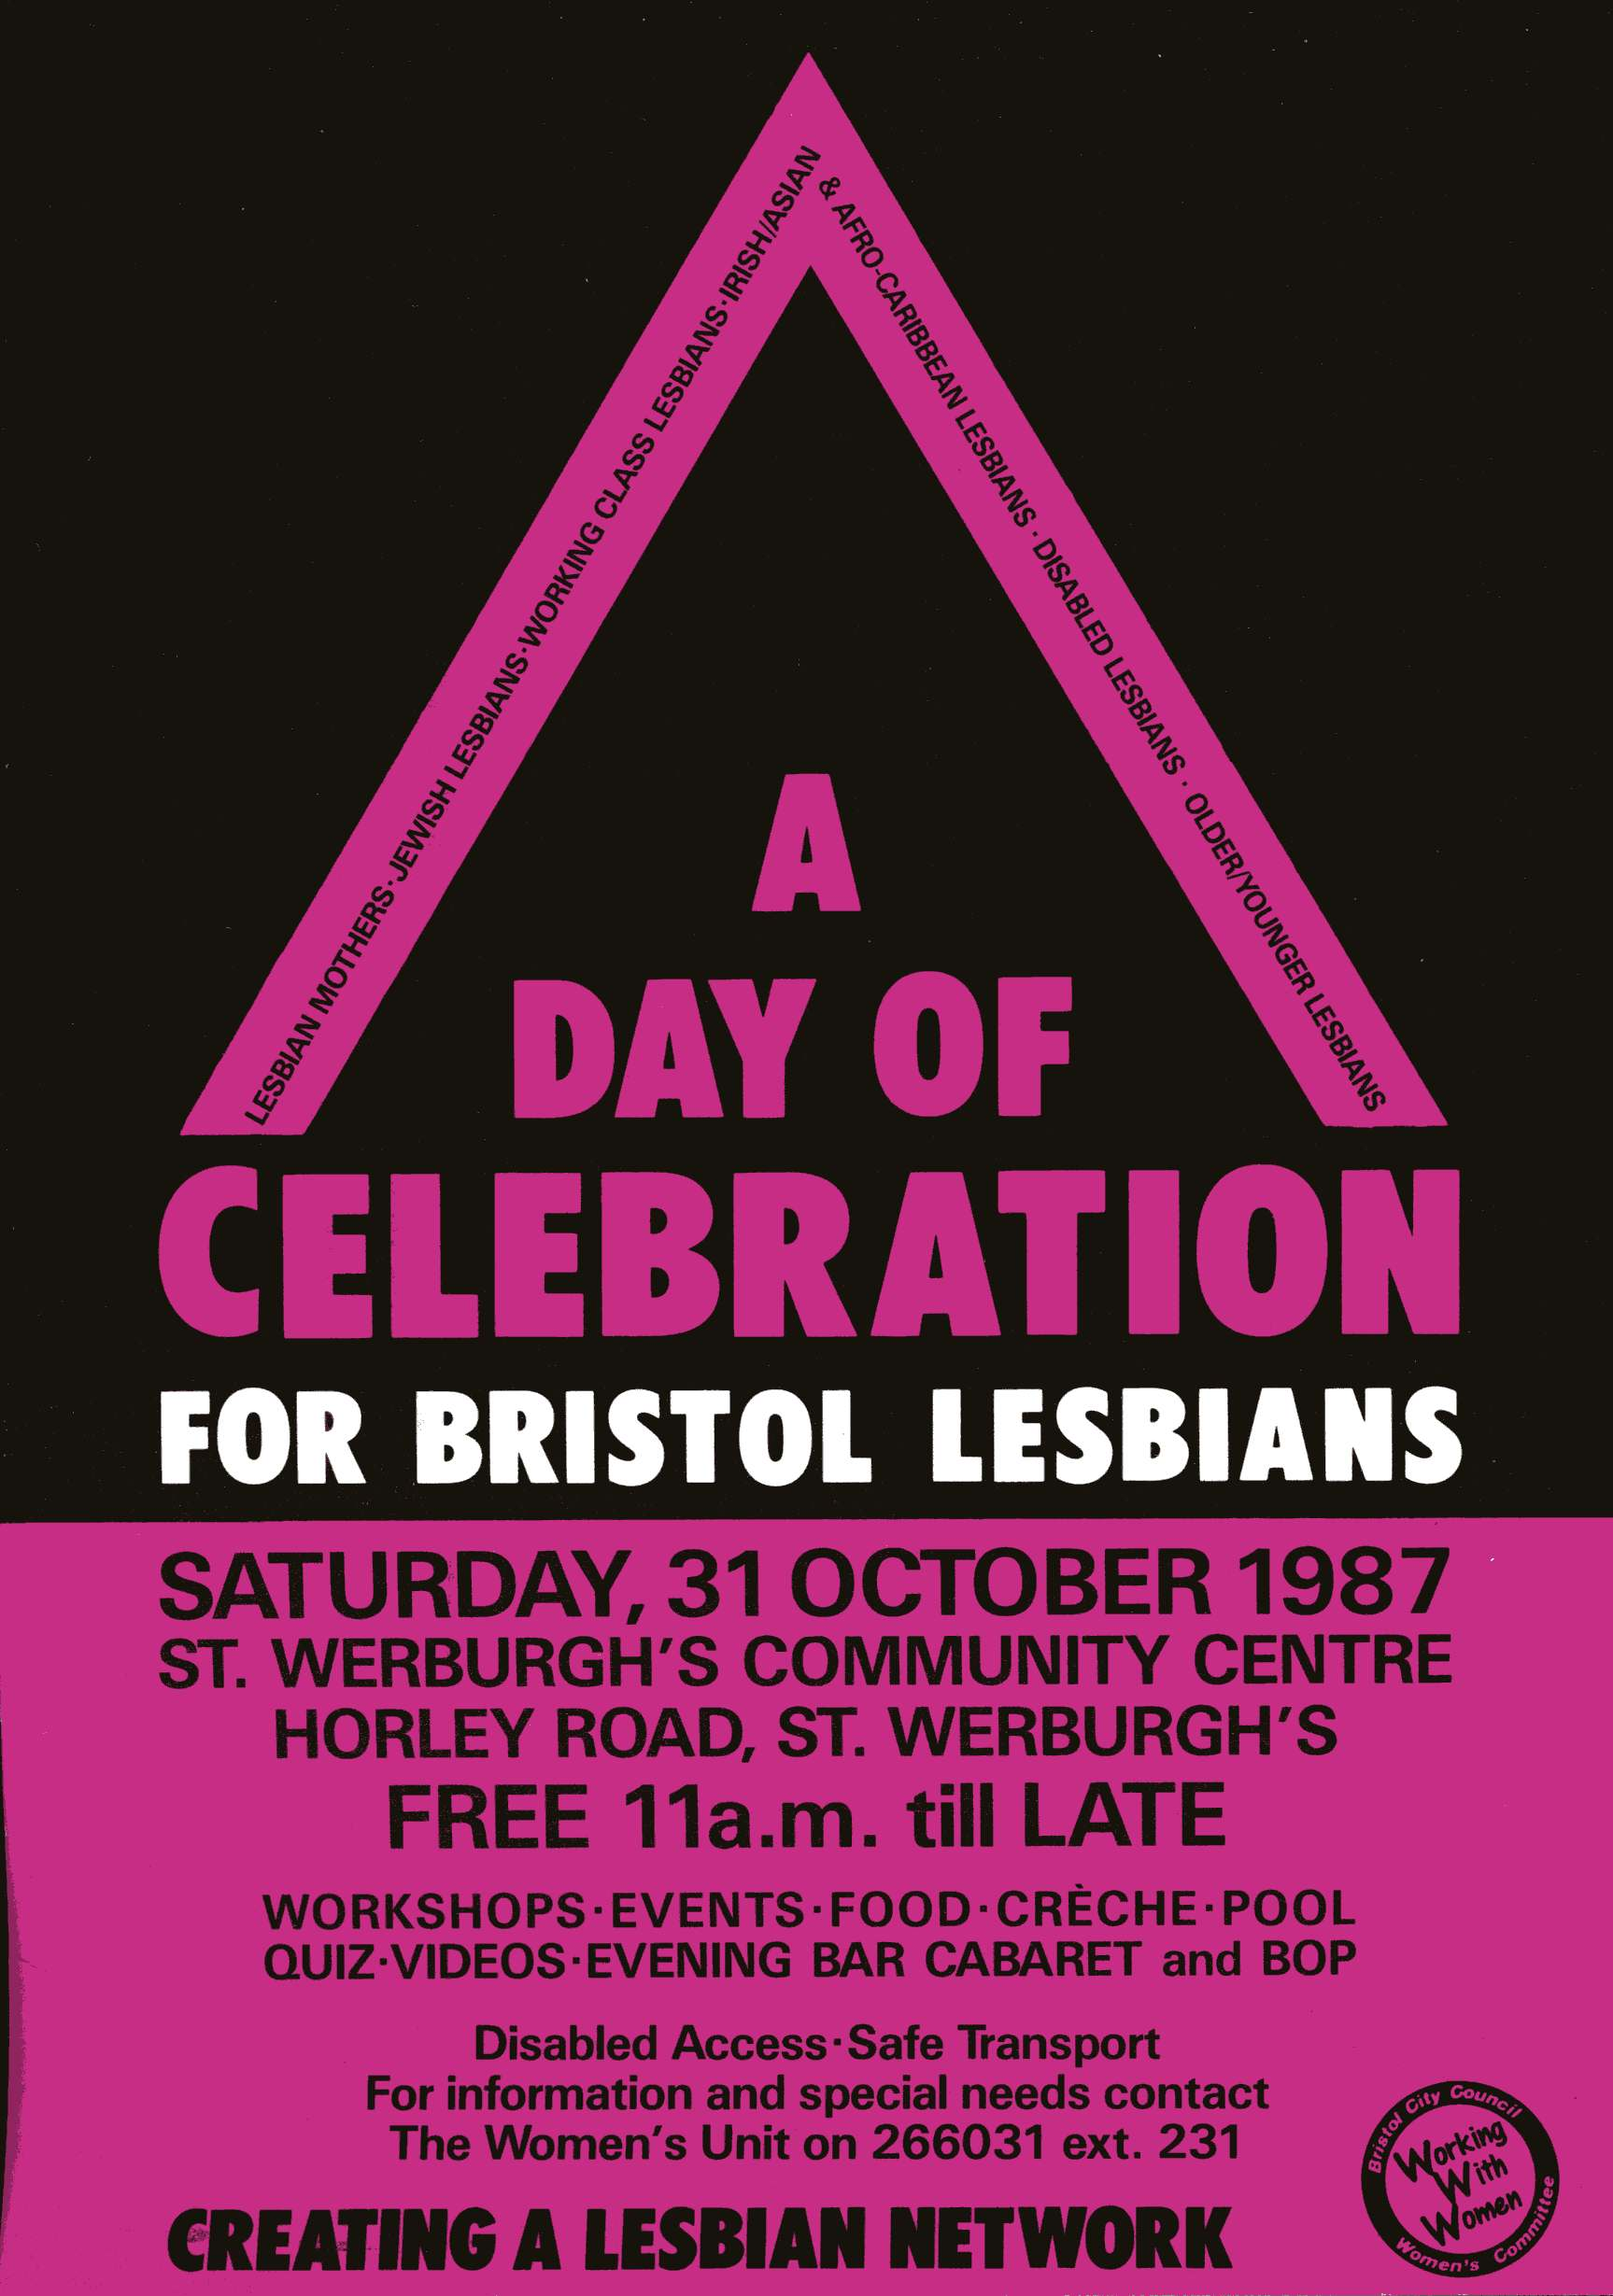 A bright purple and black flier with a triangular motif and text describing the Day of Celebration event.